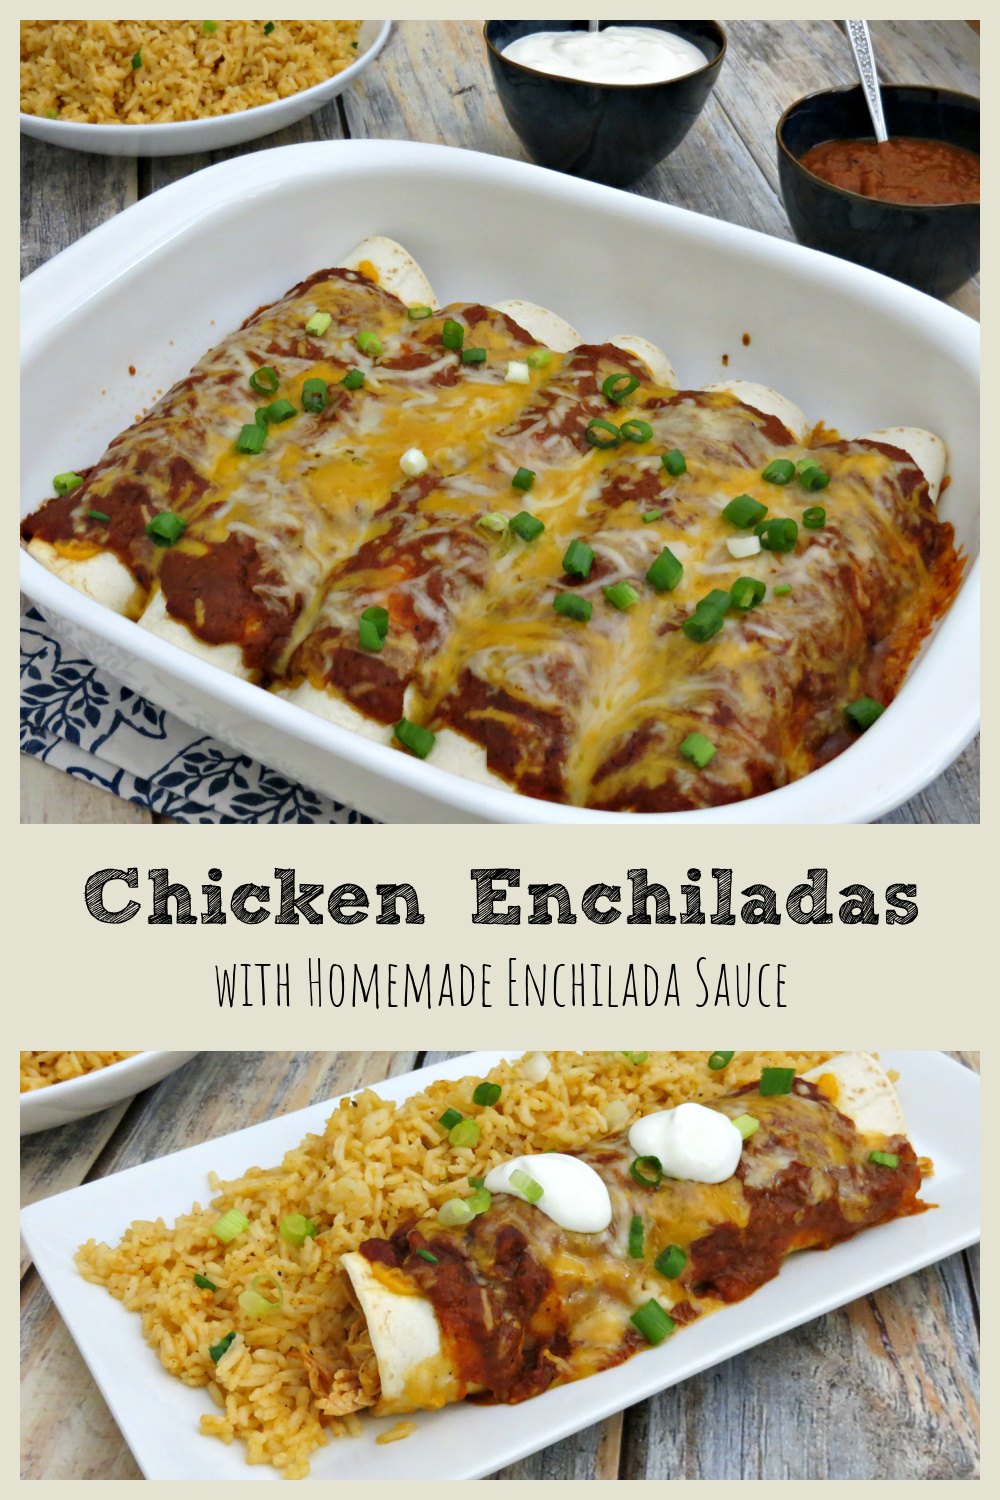 Enchiladas are one of our go-to dinner recipes and I long ago stopped buying the sauce in a can. With this homemade enchilada sauce recipe, you will too!